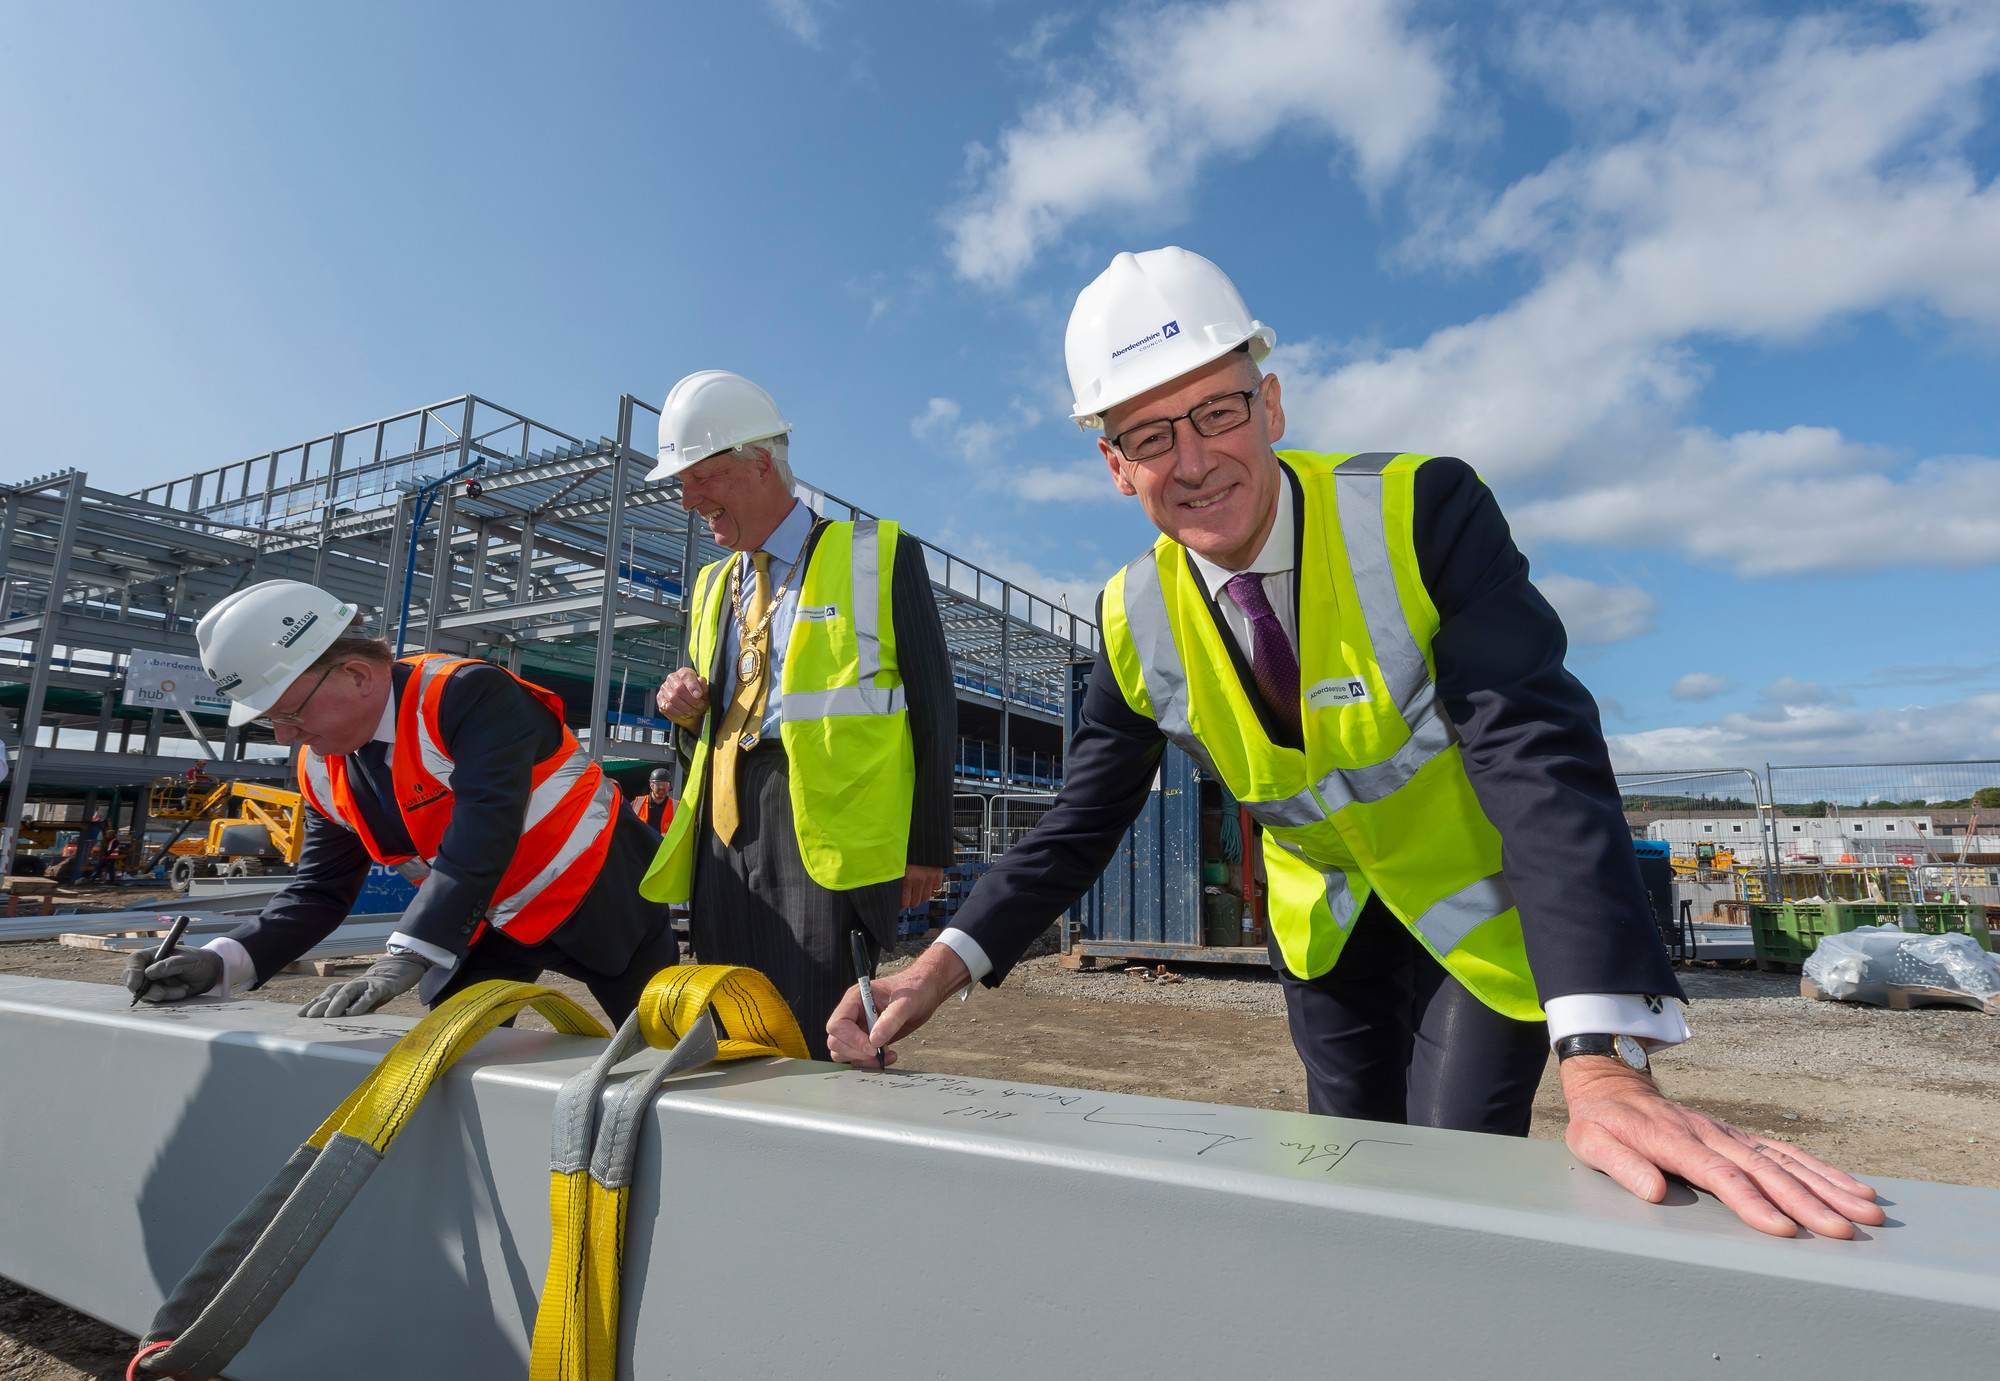 Deputy First Minister witnesses £55m Community Campus construction in action in Aberdeenshire